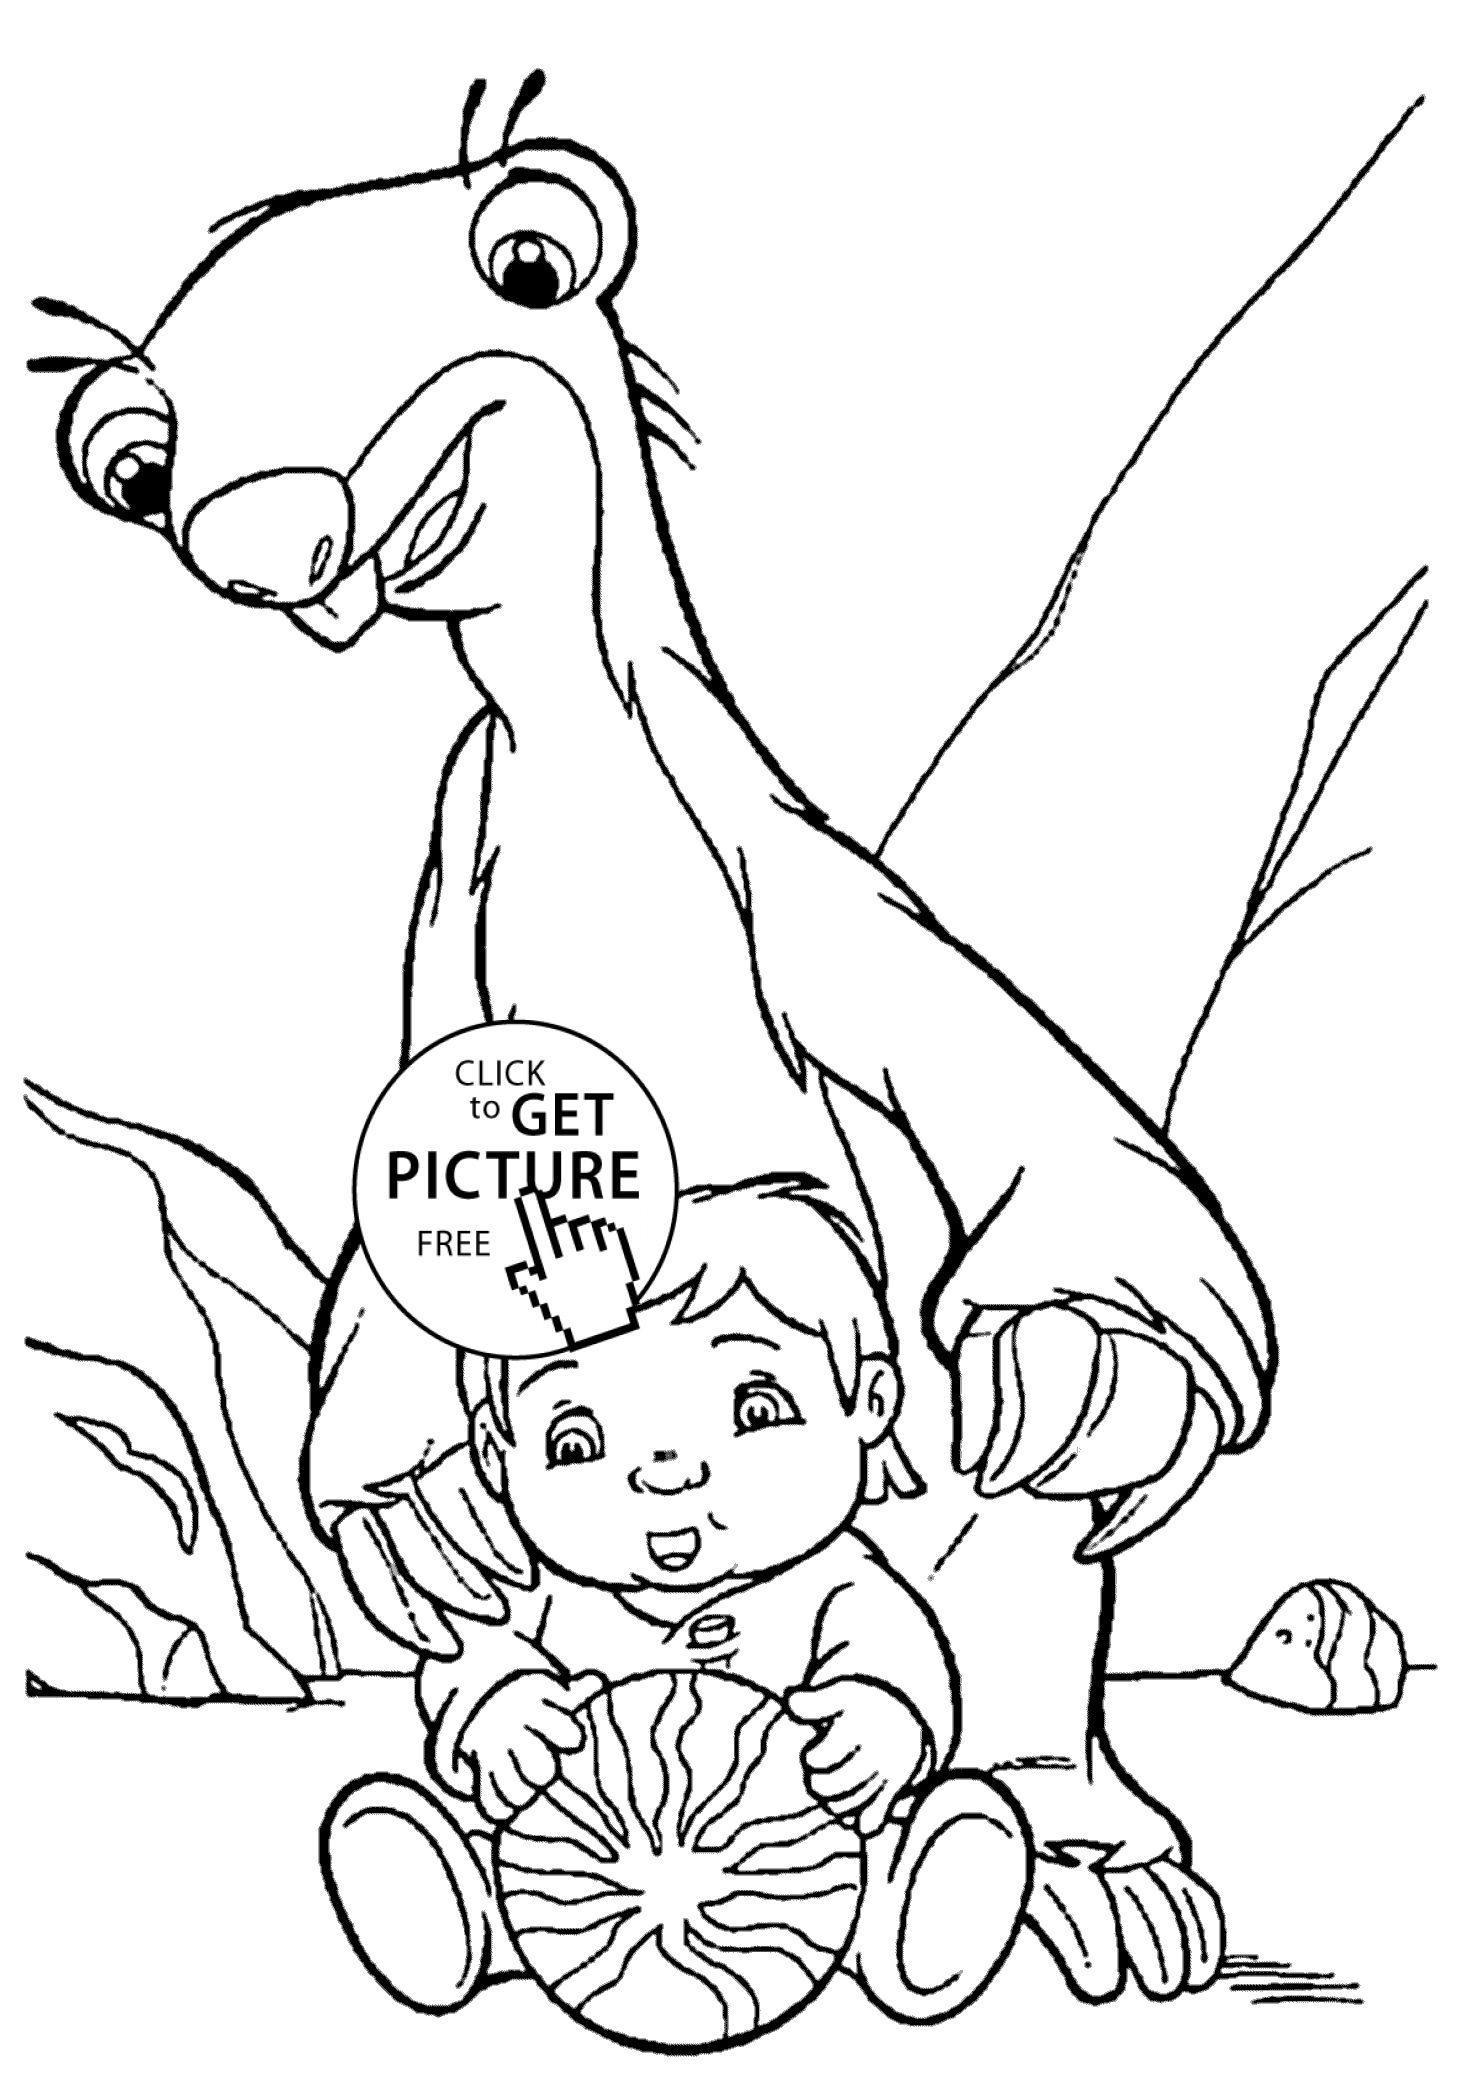 Ice Age Coloring Pages Download Baby Coloring Pages Cartoon Coloring Pages Animal Coloring Pages